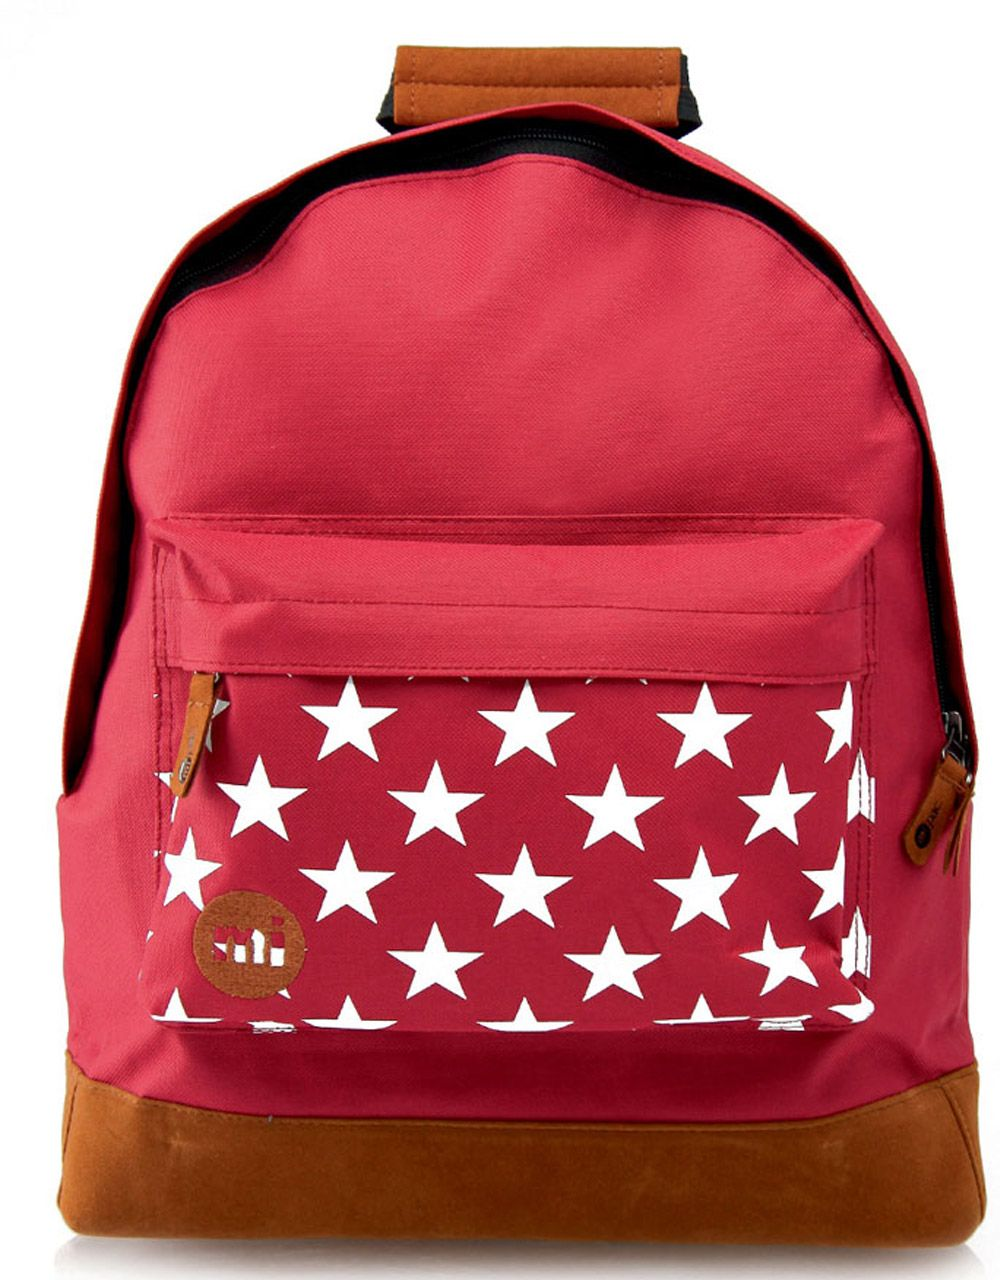 Рюкзак Mi-Pac Pocket Prints Stars Burgundy, 17л